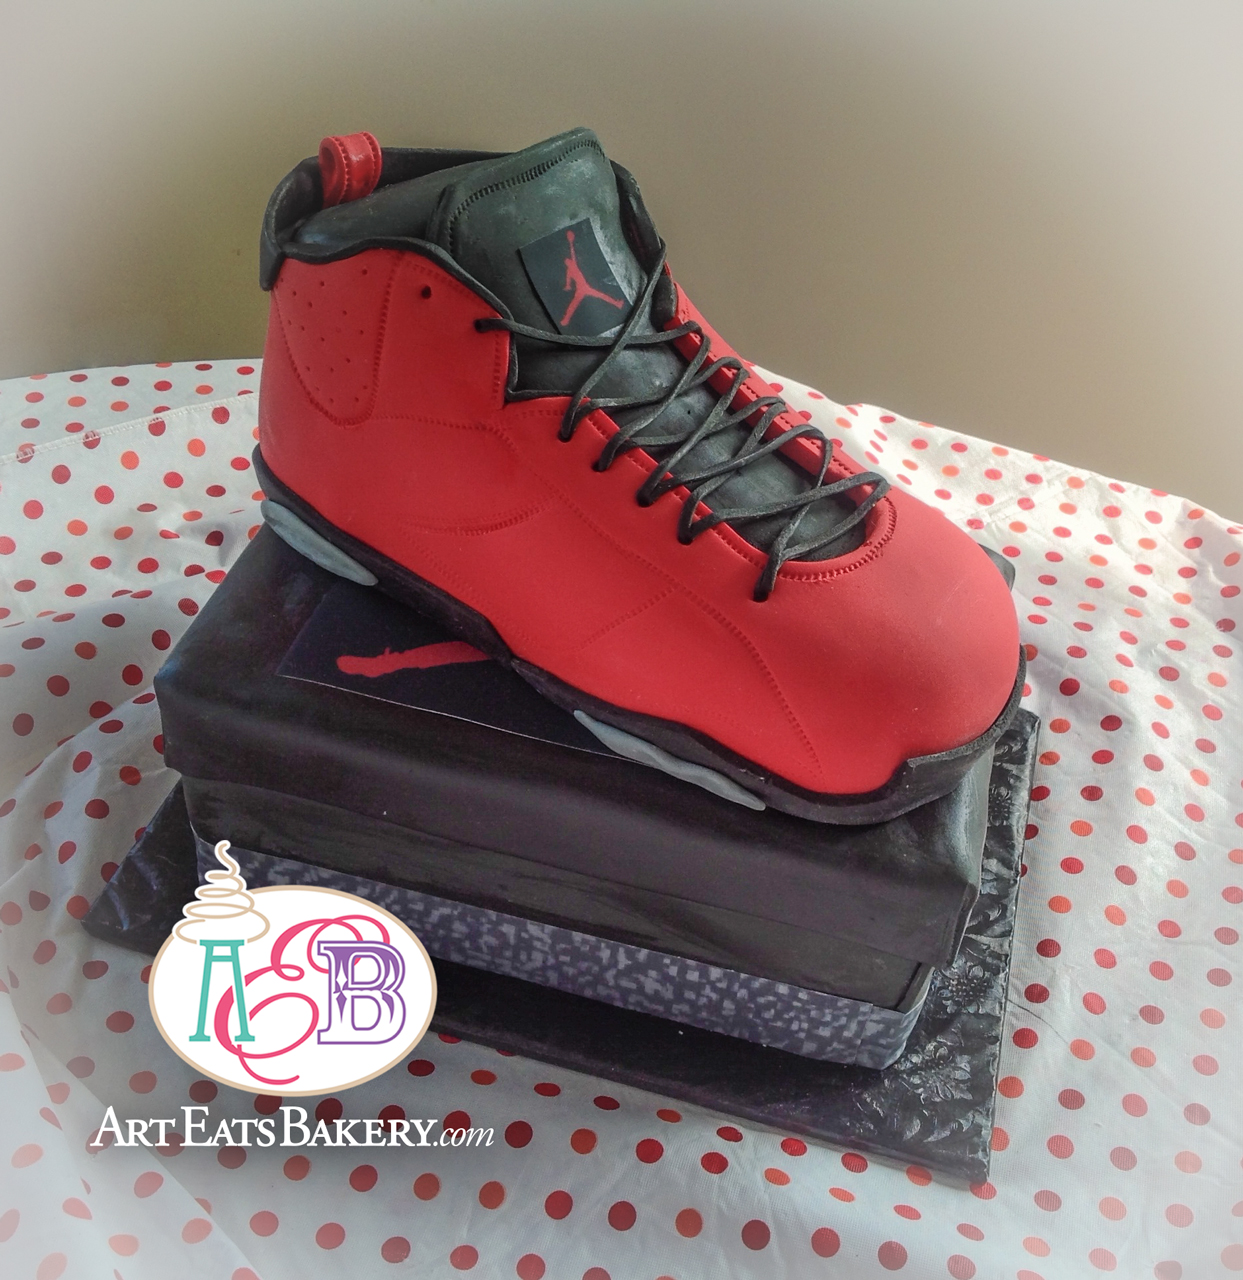 Red and black fondant 3D Men's Nike shoe and box custom modern  birthday cake design.jpg